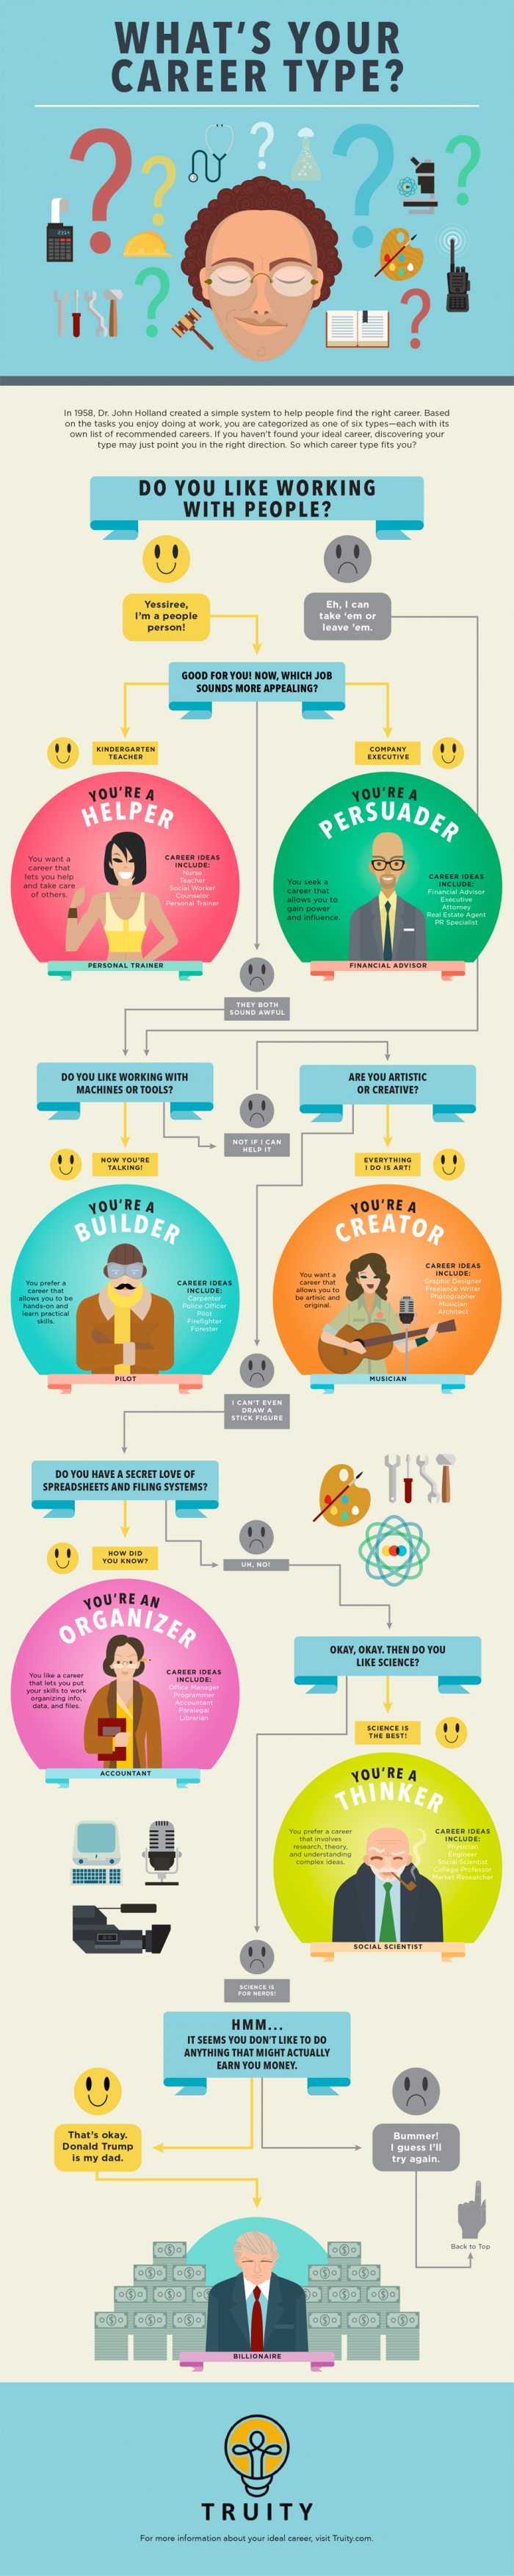 Find-Your-Career-Personality-Type